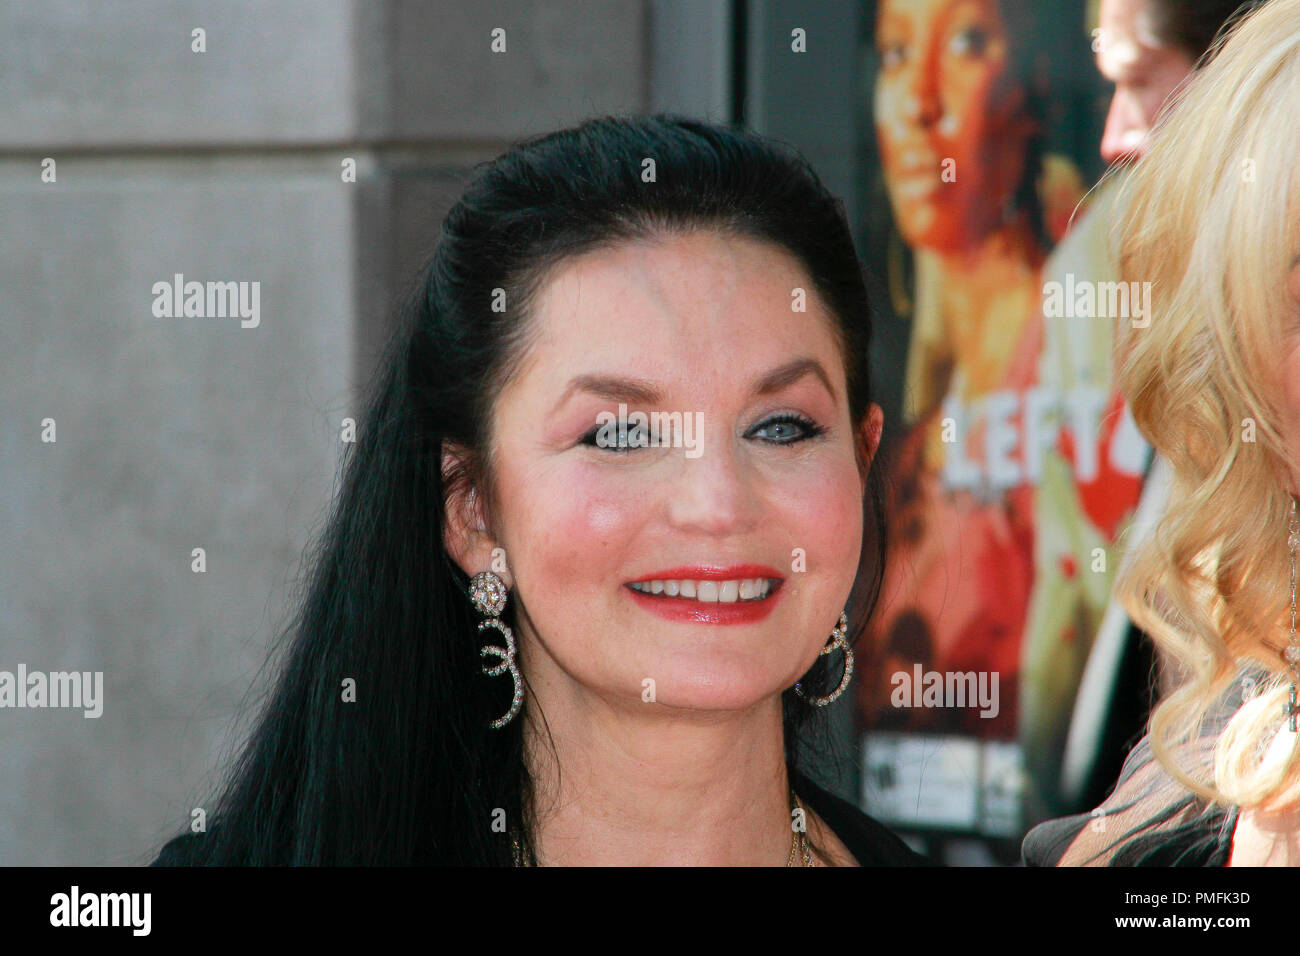 Crystal Gayle at the Hollywood Chamber of Commerce ceremony to honor her with the 2,390th Star on the Hollywood Walk of Fame on Vine Street near Sunset Boulevard in Hollywood, CA, October 2, 2009. Photo by Picturelux File Reference # 30082_29PLX   For Editorial Use Only -  All Rights Reserved - Stock Image